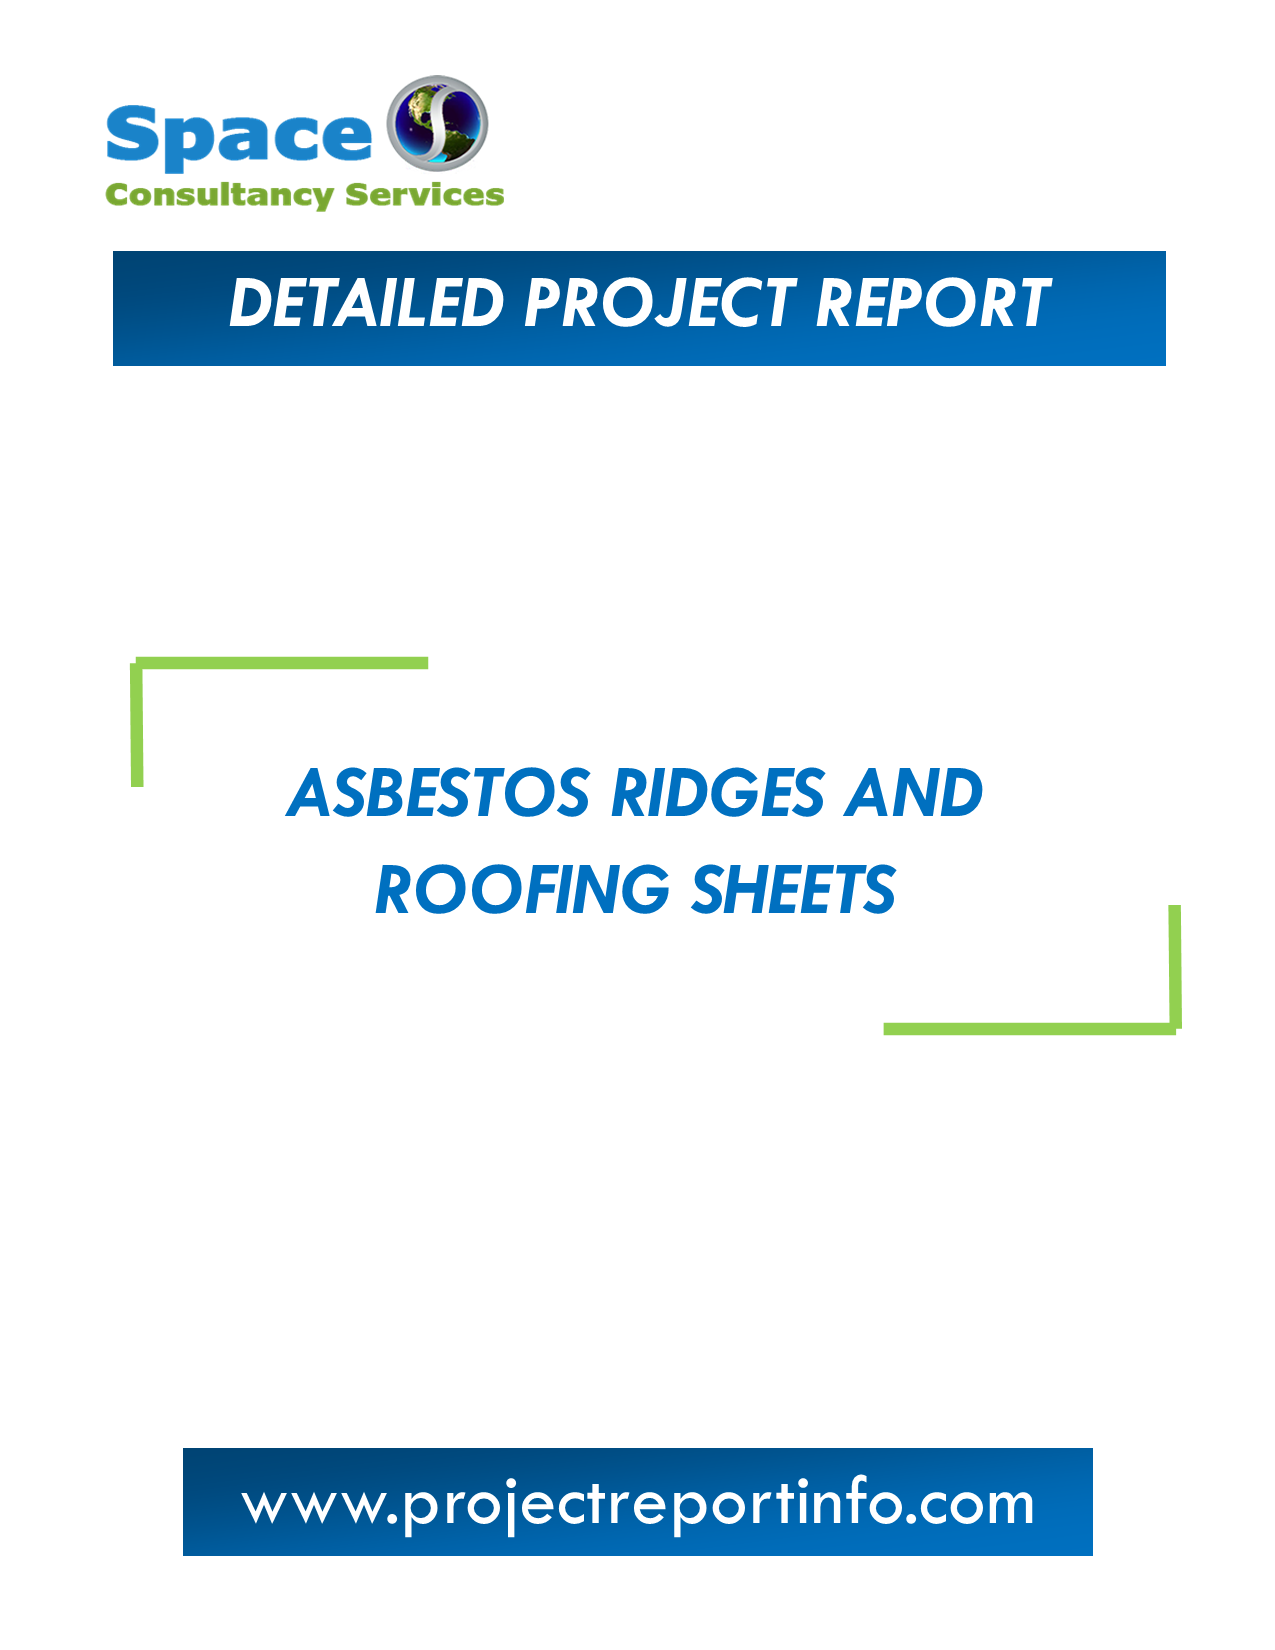 Project Report on Asbestos Ridges and Roofing Sheets Manufacturing